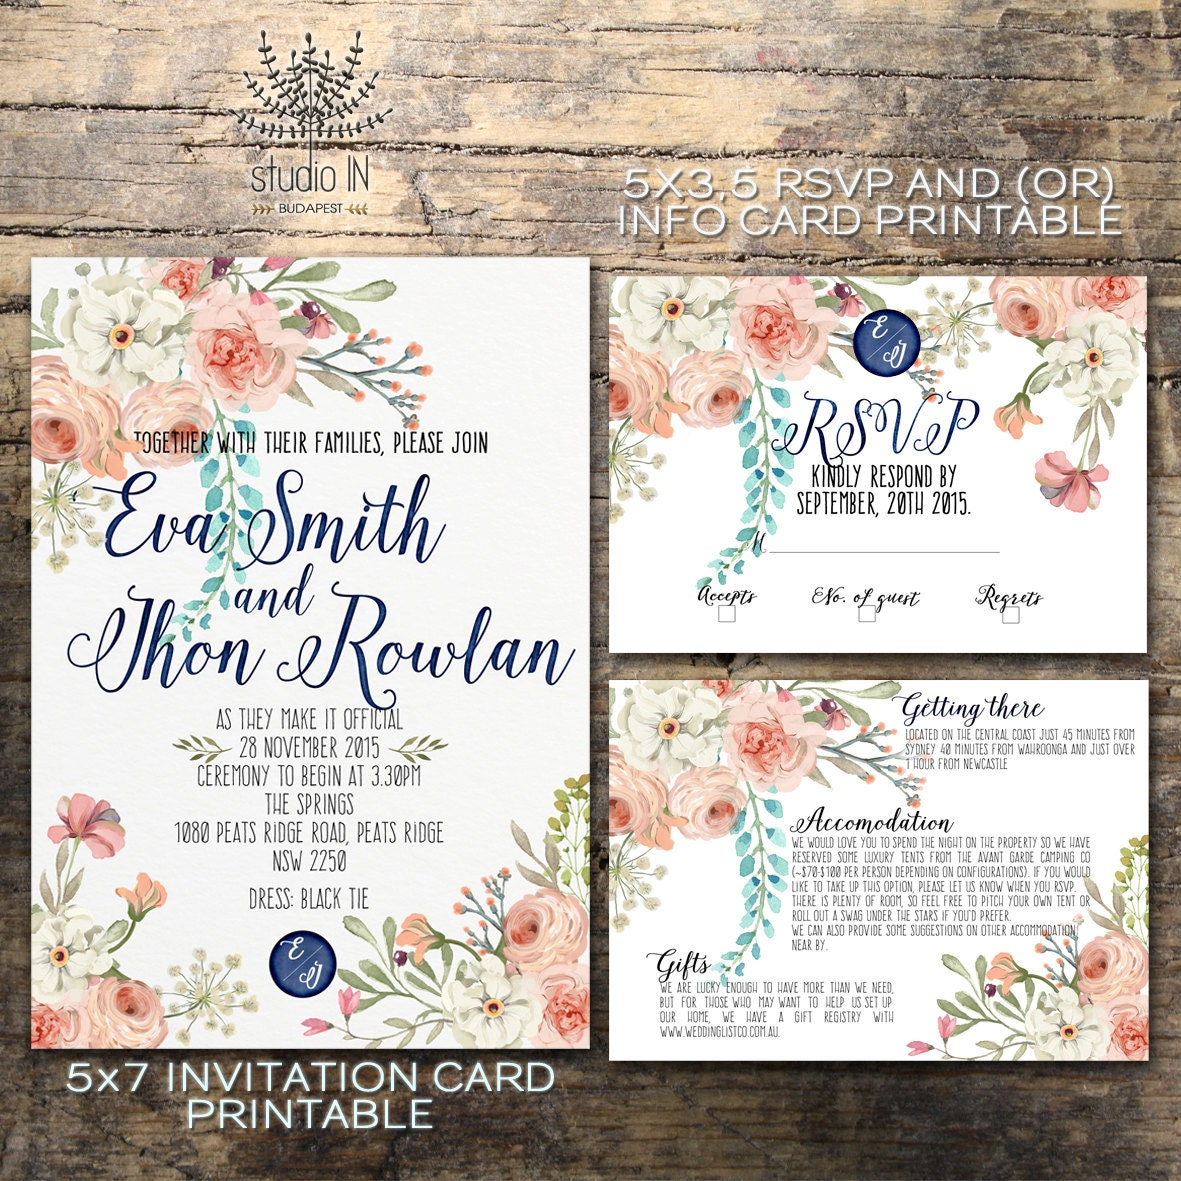 Clean image inside etsy printable wedding invitations